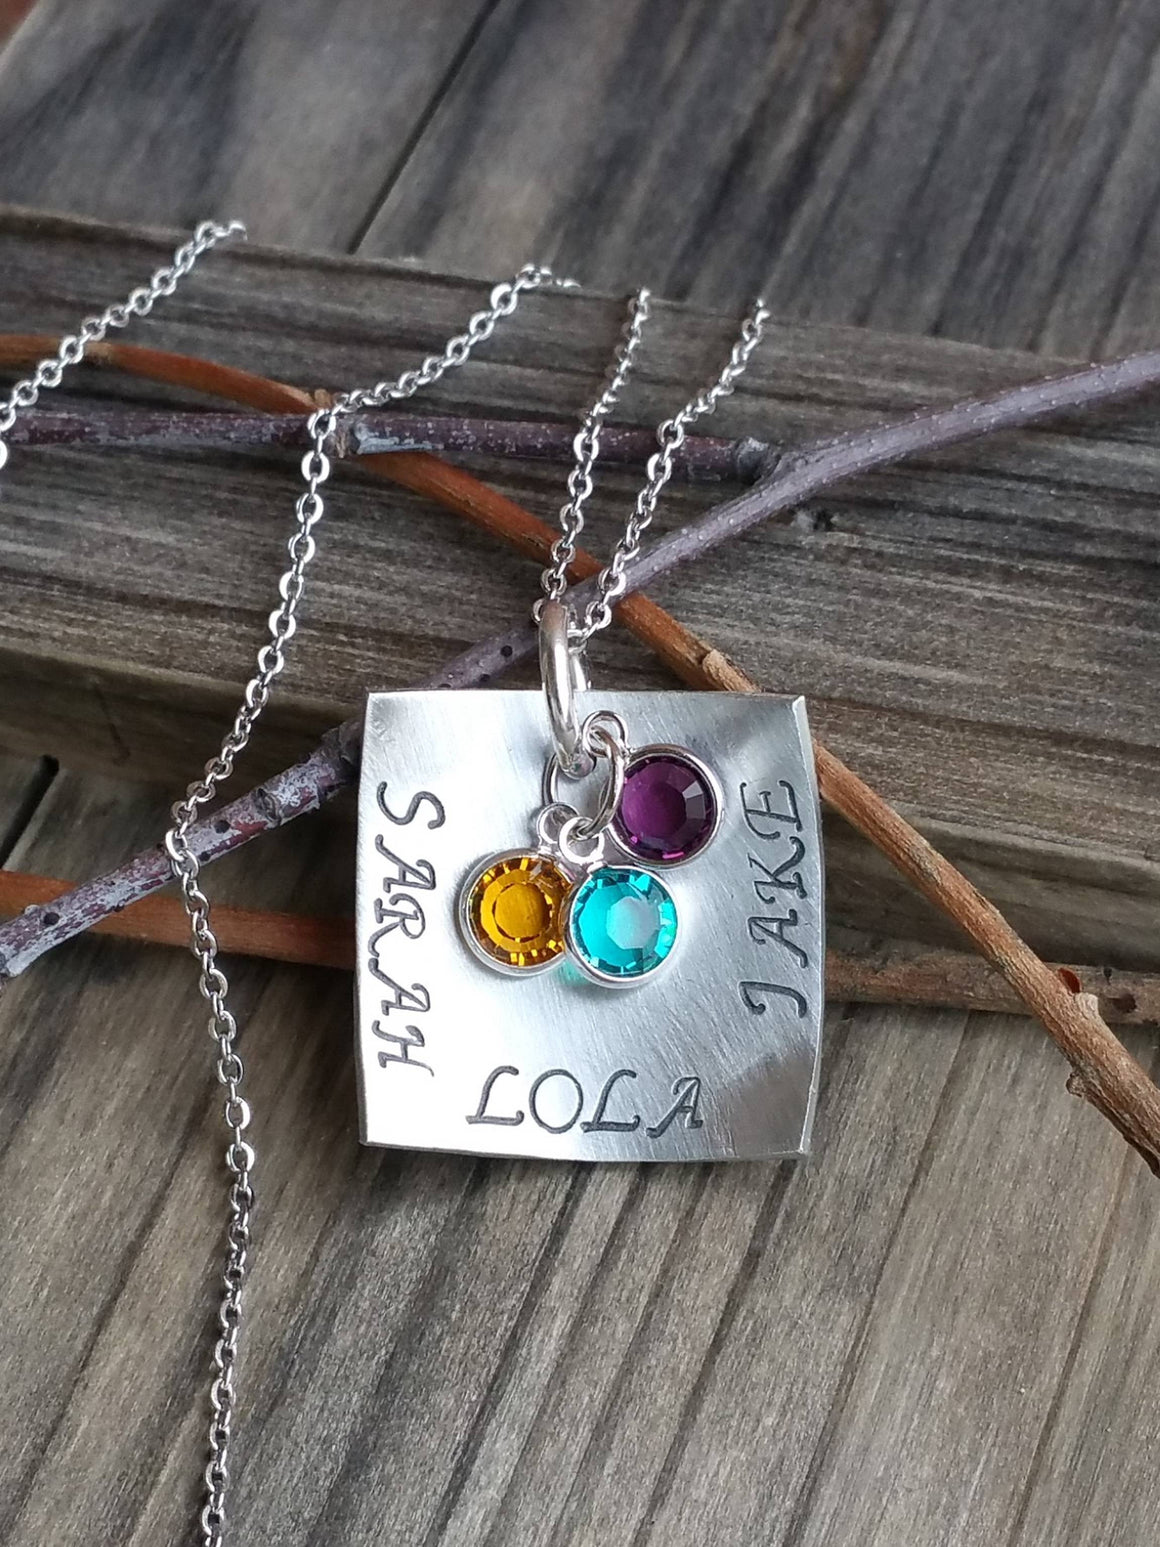 Personalized silver square pendant with birthstones necklace for her